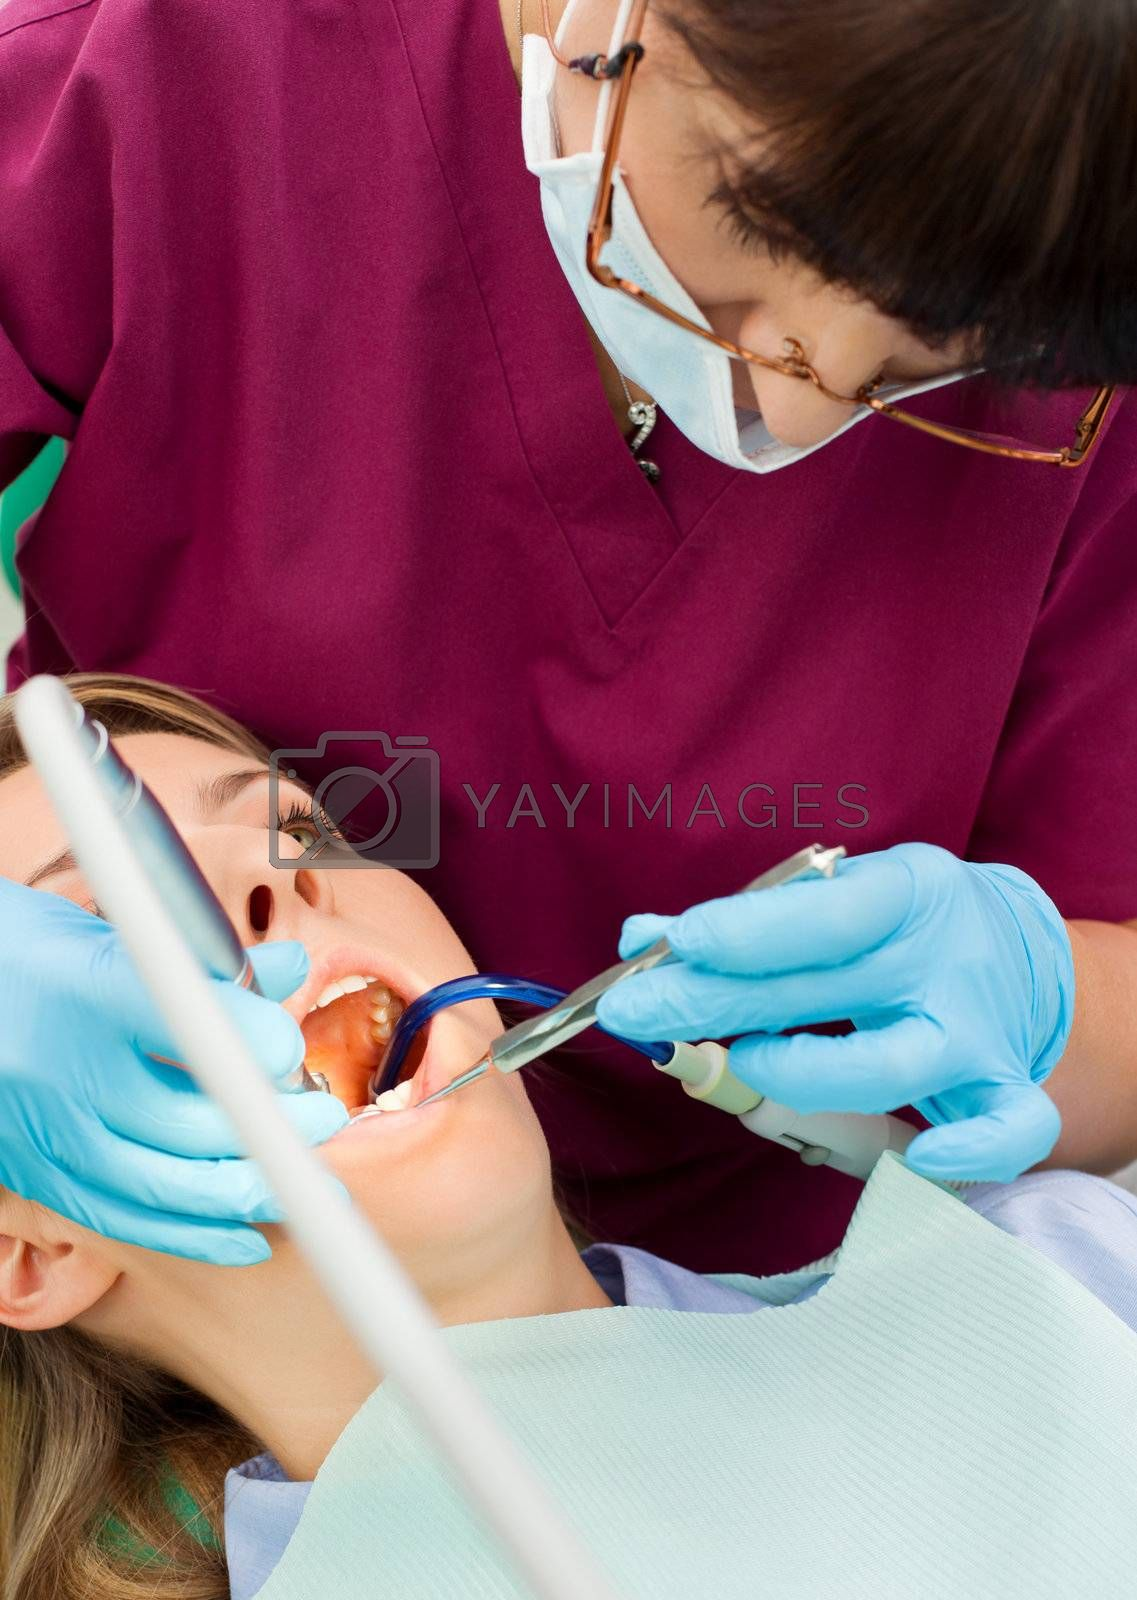 Female dentist with gloves and protective mask working on patient